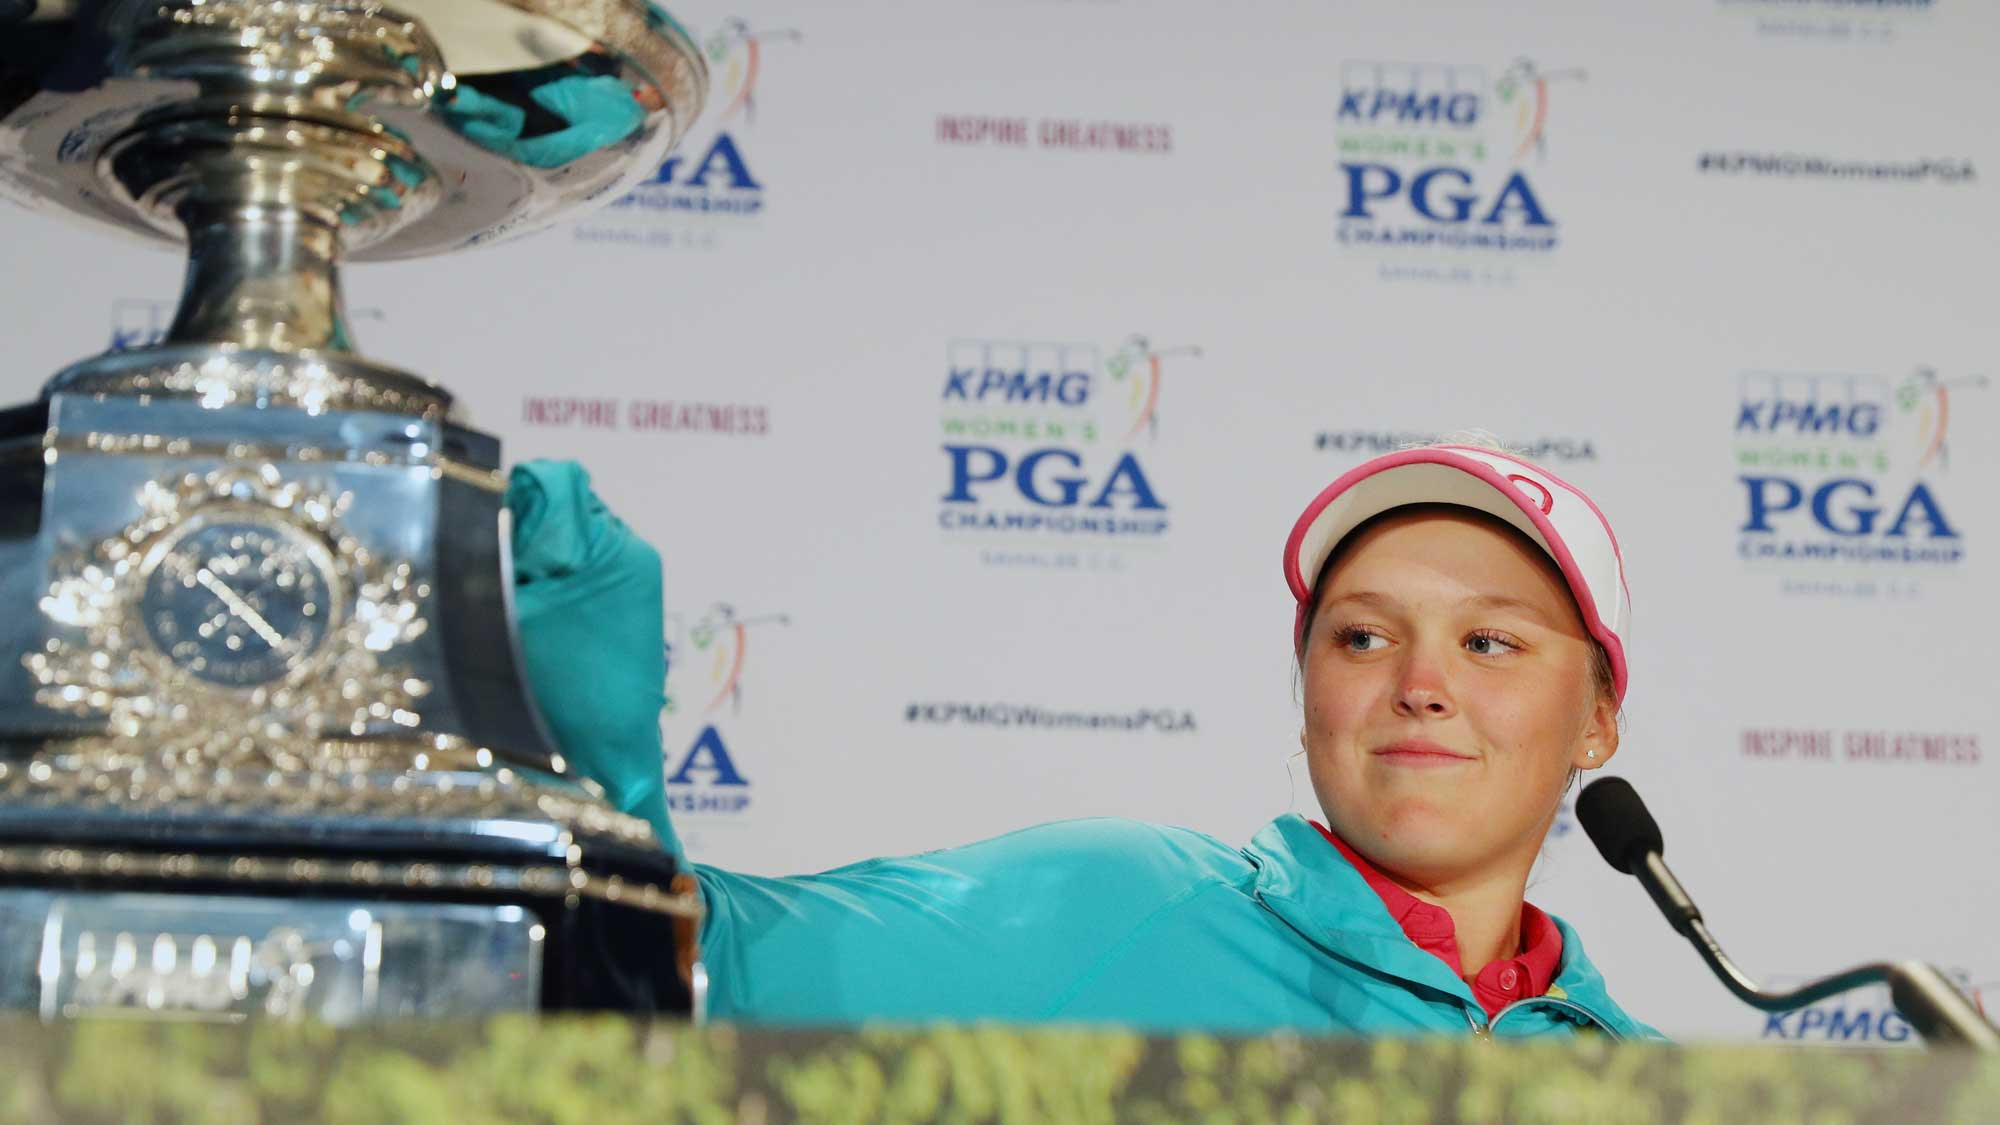 Brooke Henderson with the 2016 KPMG trophy